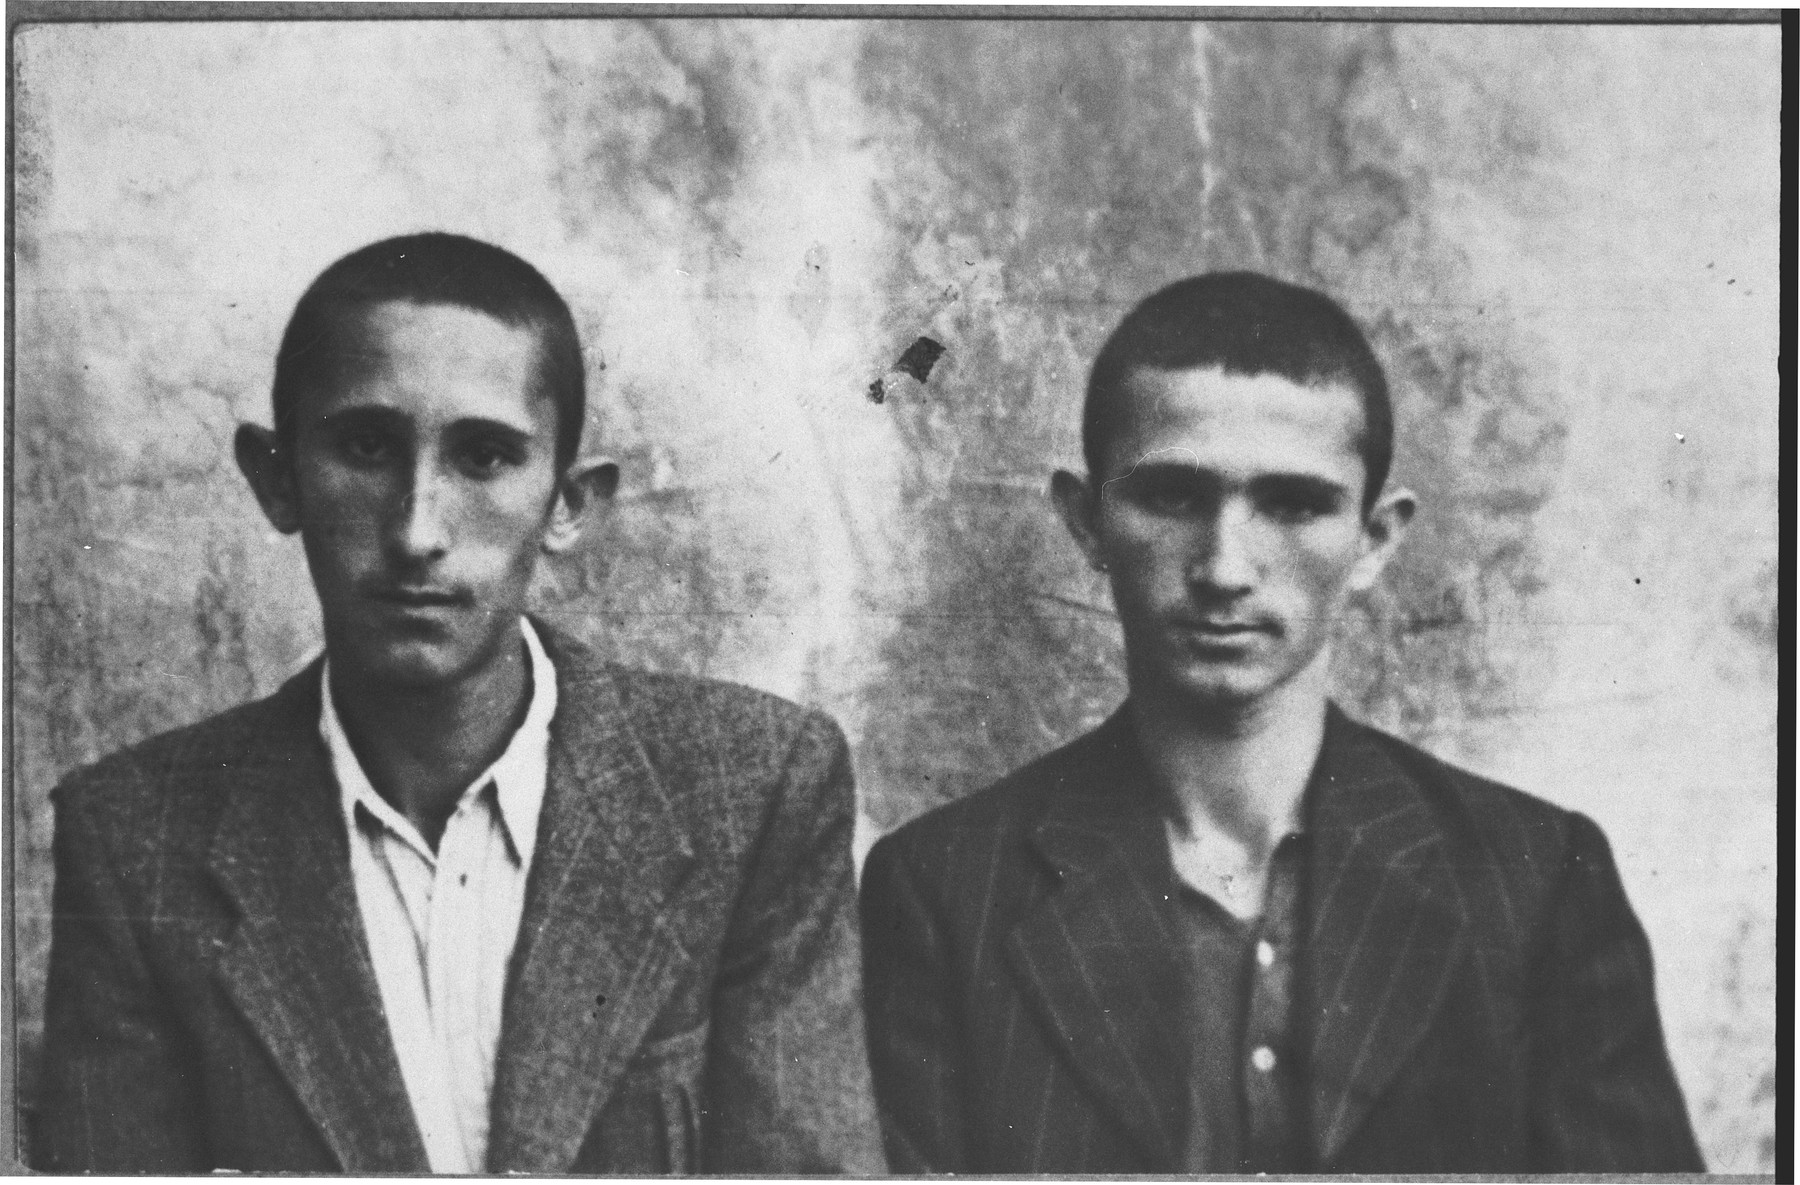 Portrait of Isak Ergas and Nissm Ergas, sons of Kutiel Ergas.  They were students.  They lived at Novatska 14 in Bitola.